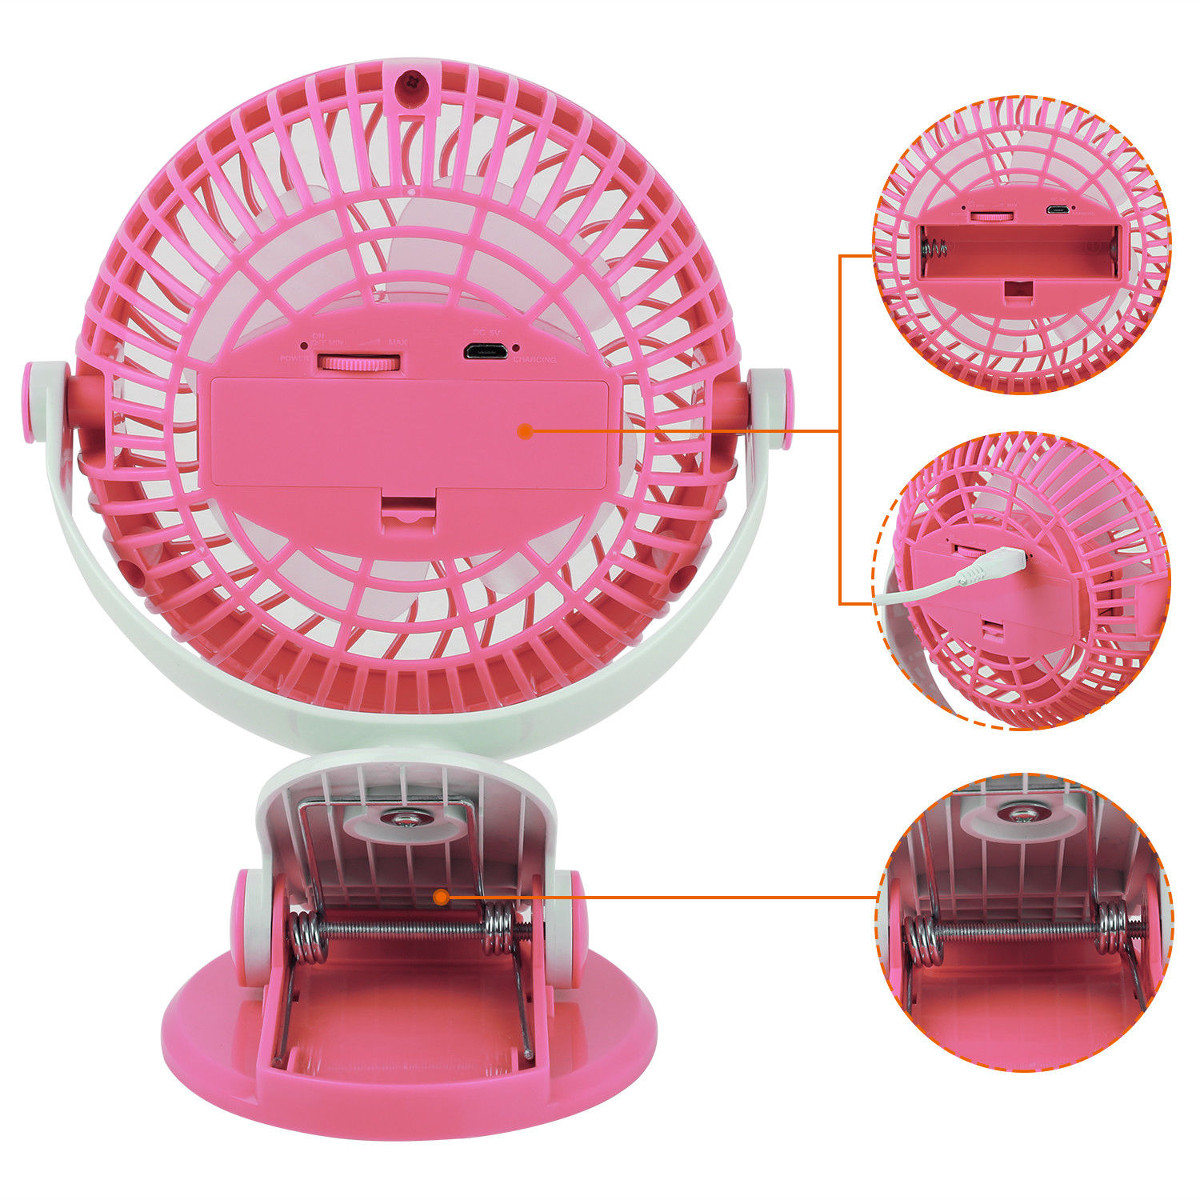 US $11 55 46% OFF|Adjustable Summer Mini Oscillating Fan Airflow 360  Degrees Rotatation USB Charging System Clip On Table for Baby  Pushchair/Desk-in